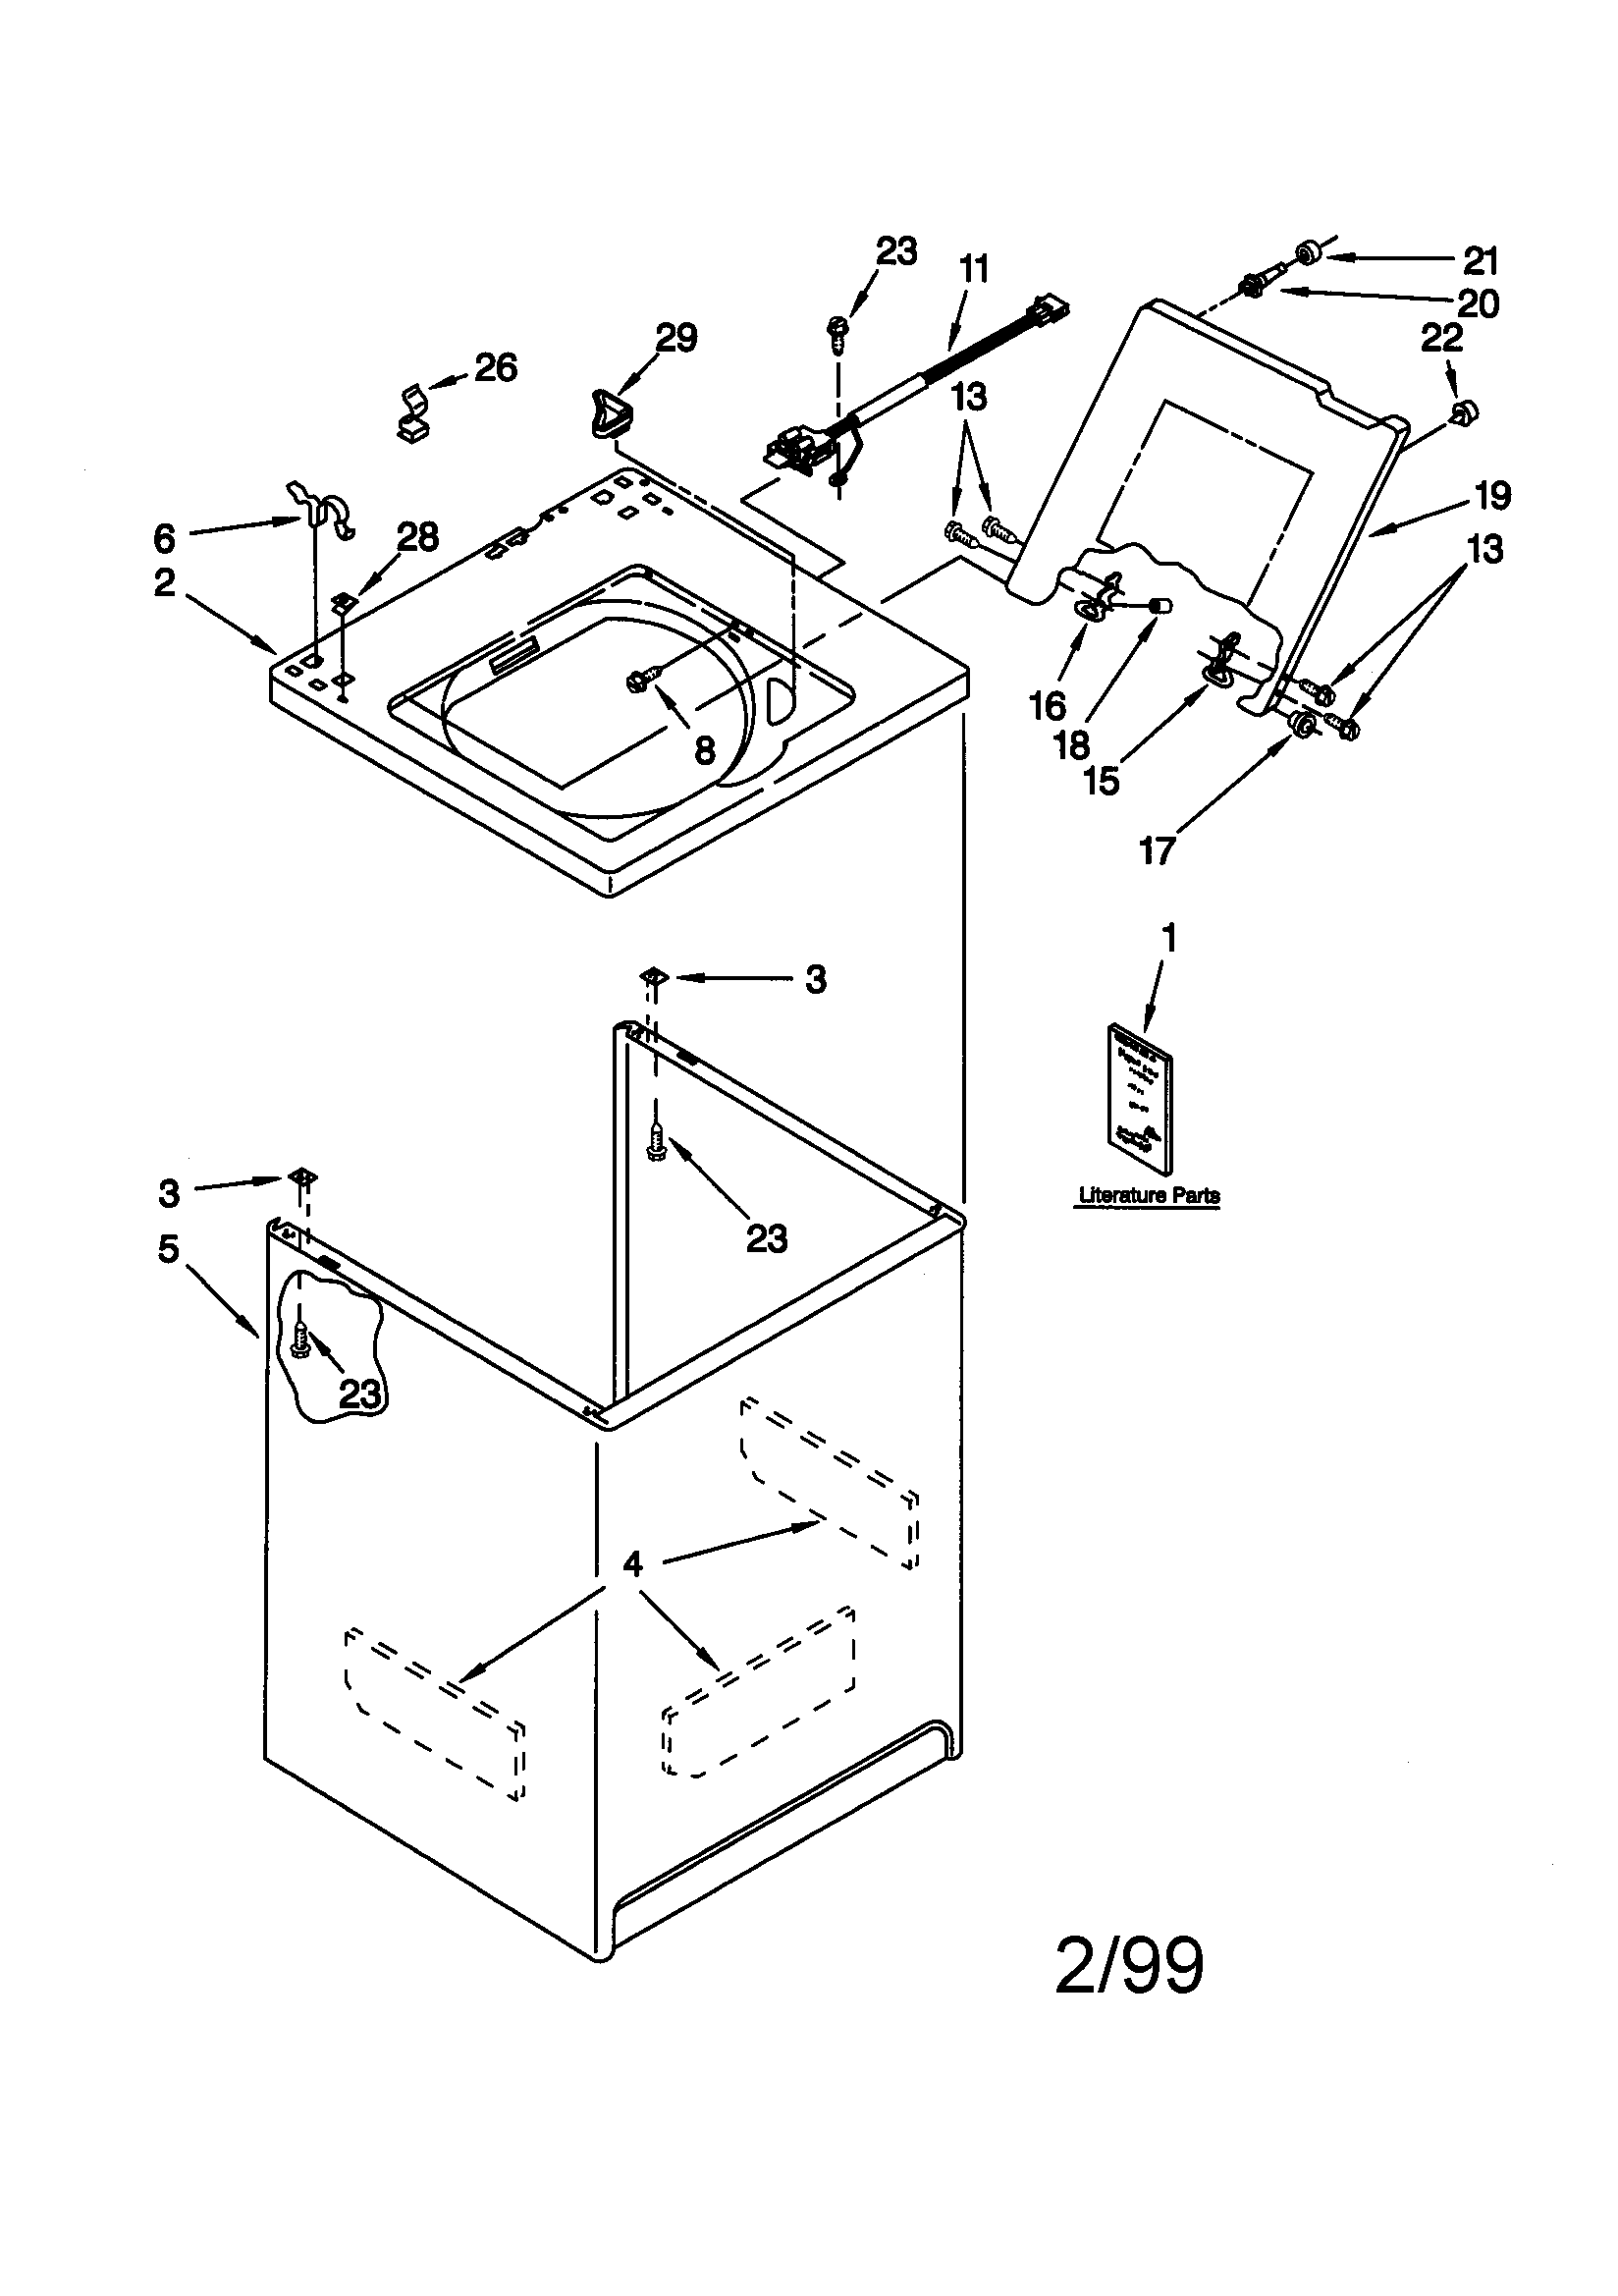 wiring diagram for kenmore washer model 2130